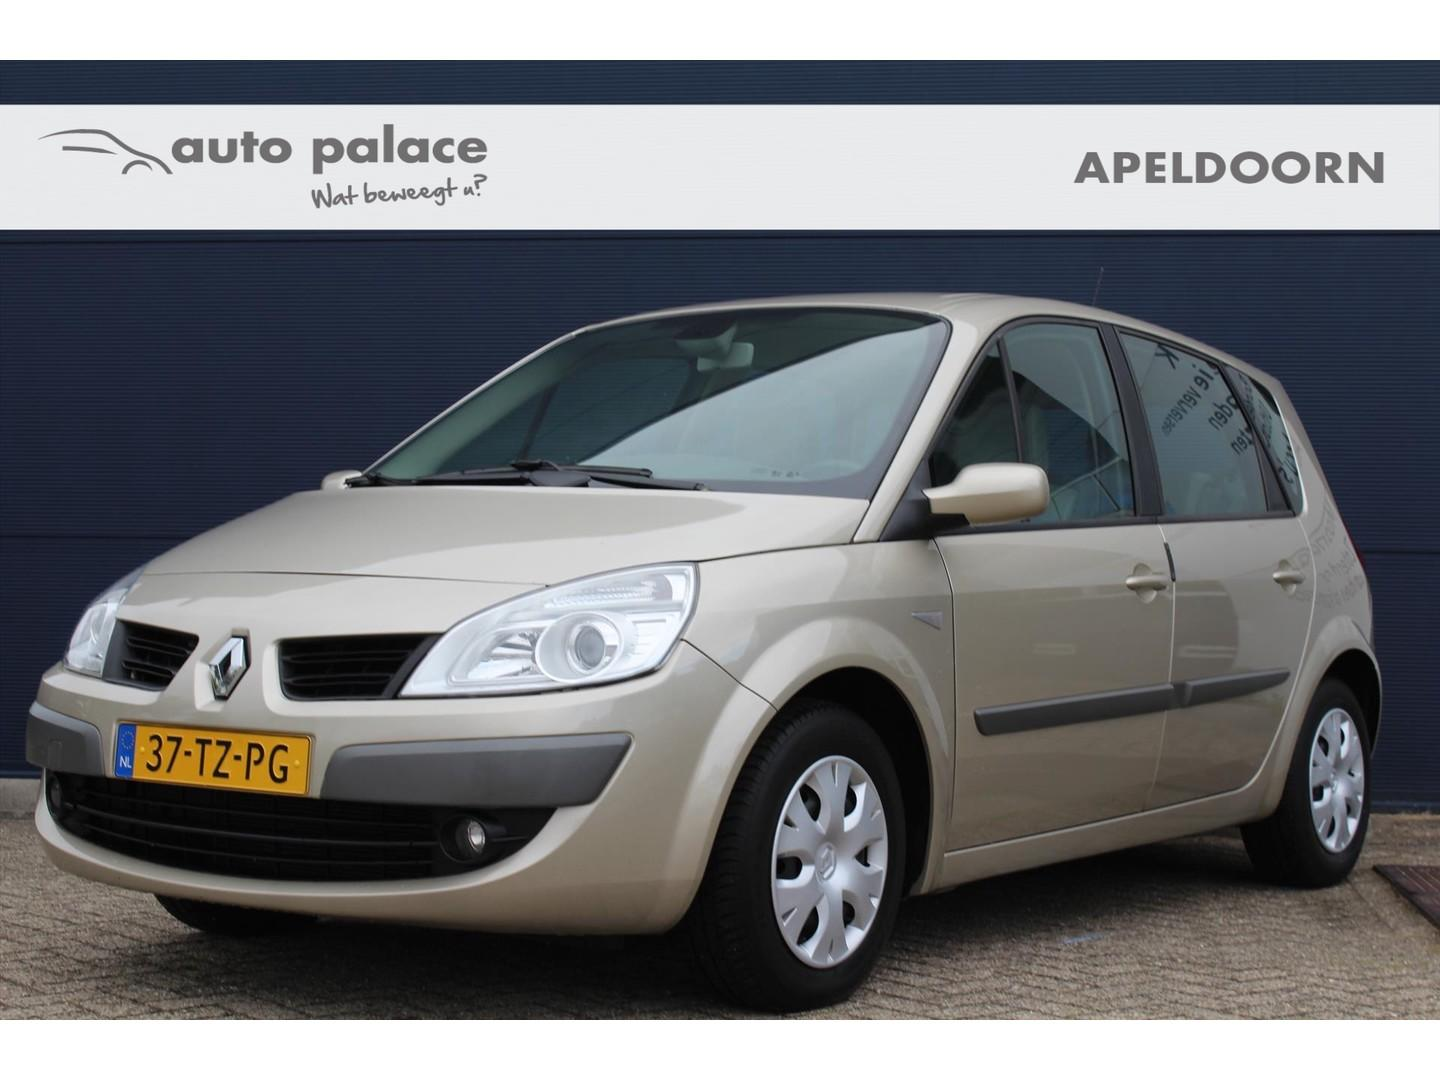 Renault Scénic 1.6 16v 82kw business line clima, cruise